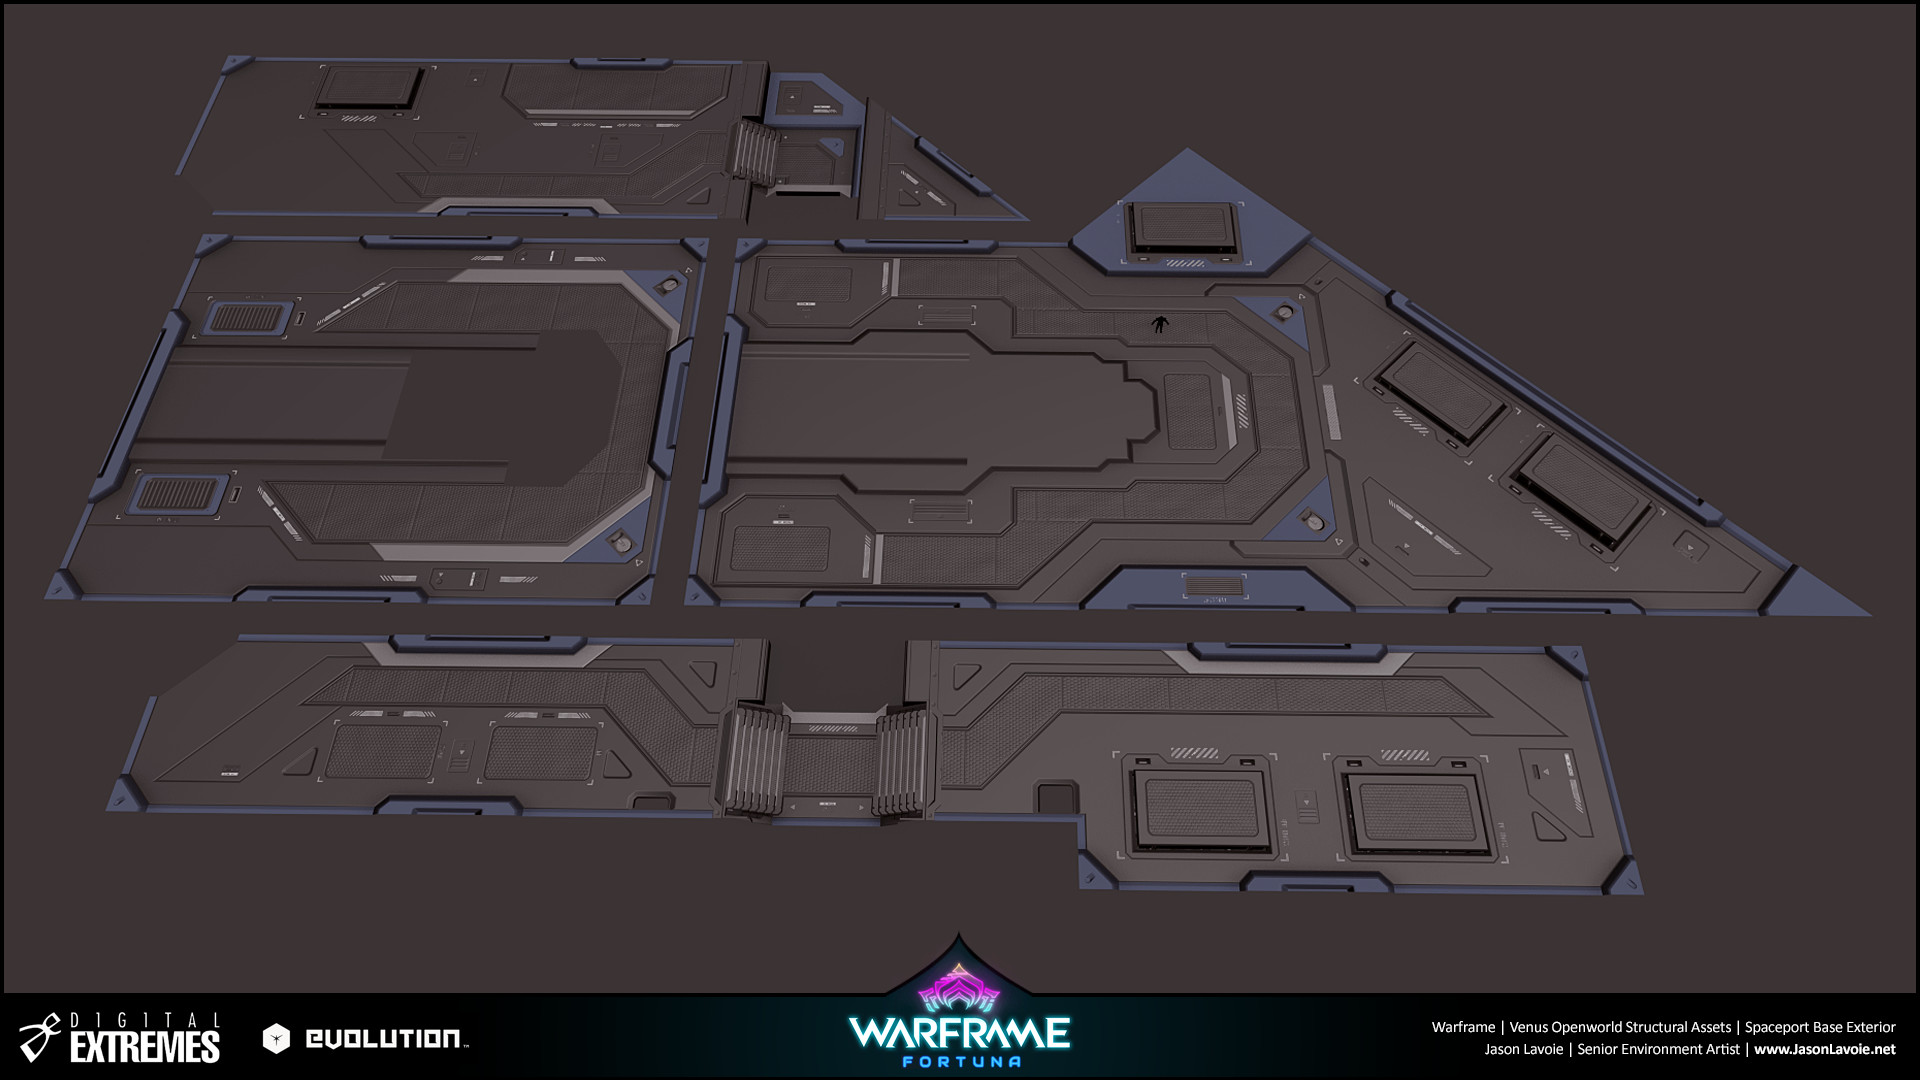 Jason lavoie jasonlavoie warframefortuna spaceportbaseexterior 3dmax floors